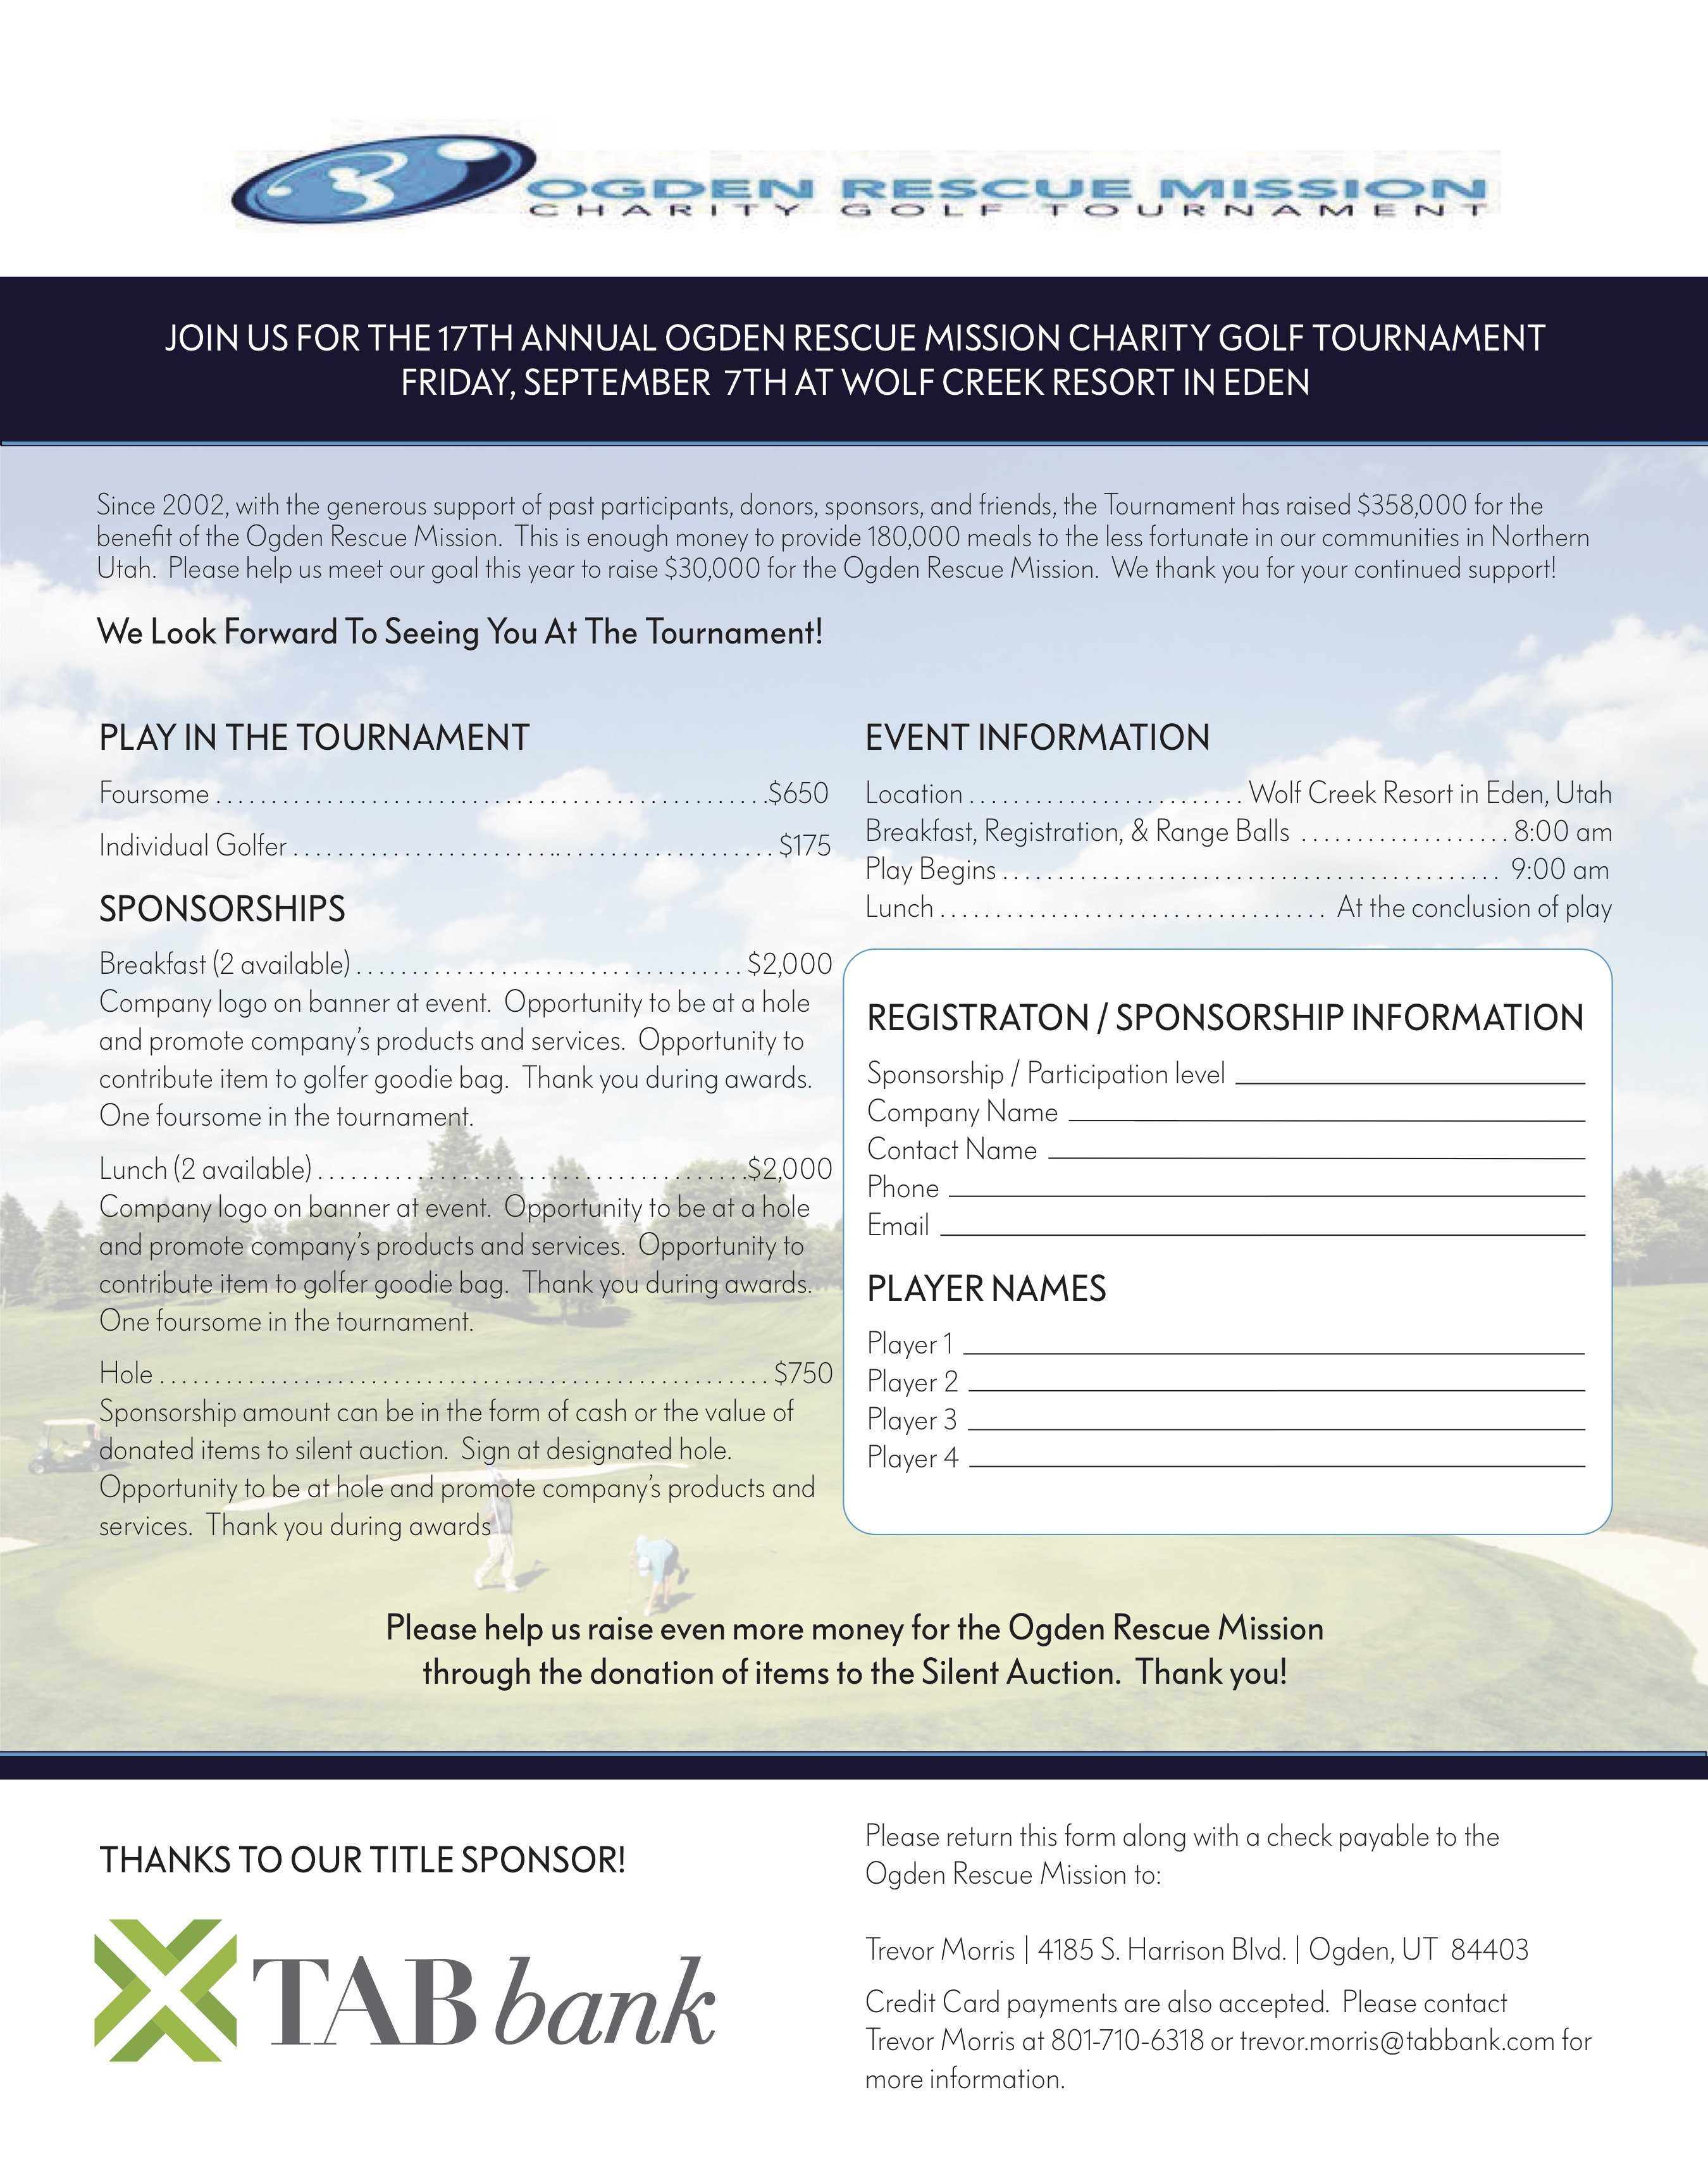 Nubiz › Ogden Rescue Mission Charity Golf Tournament